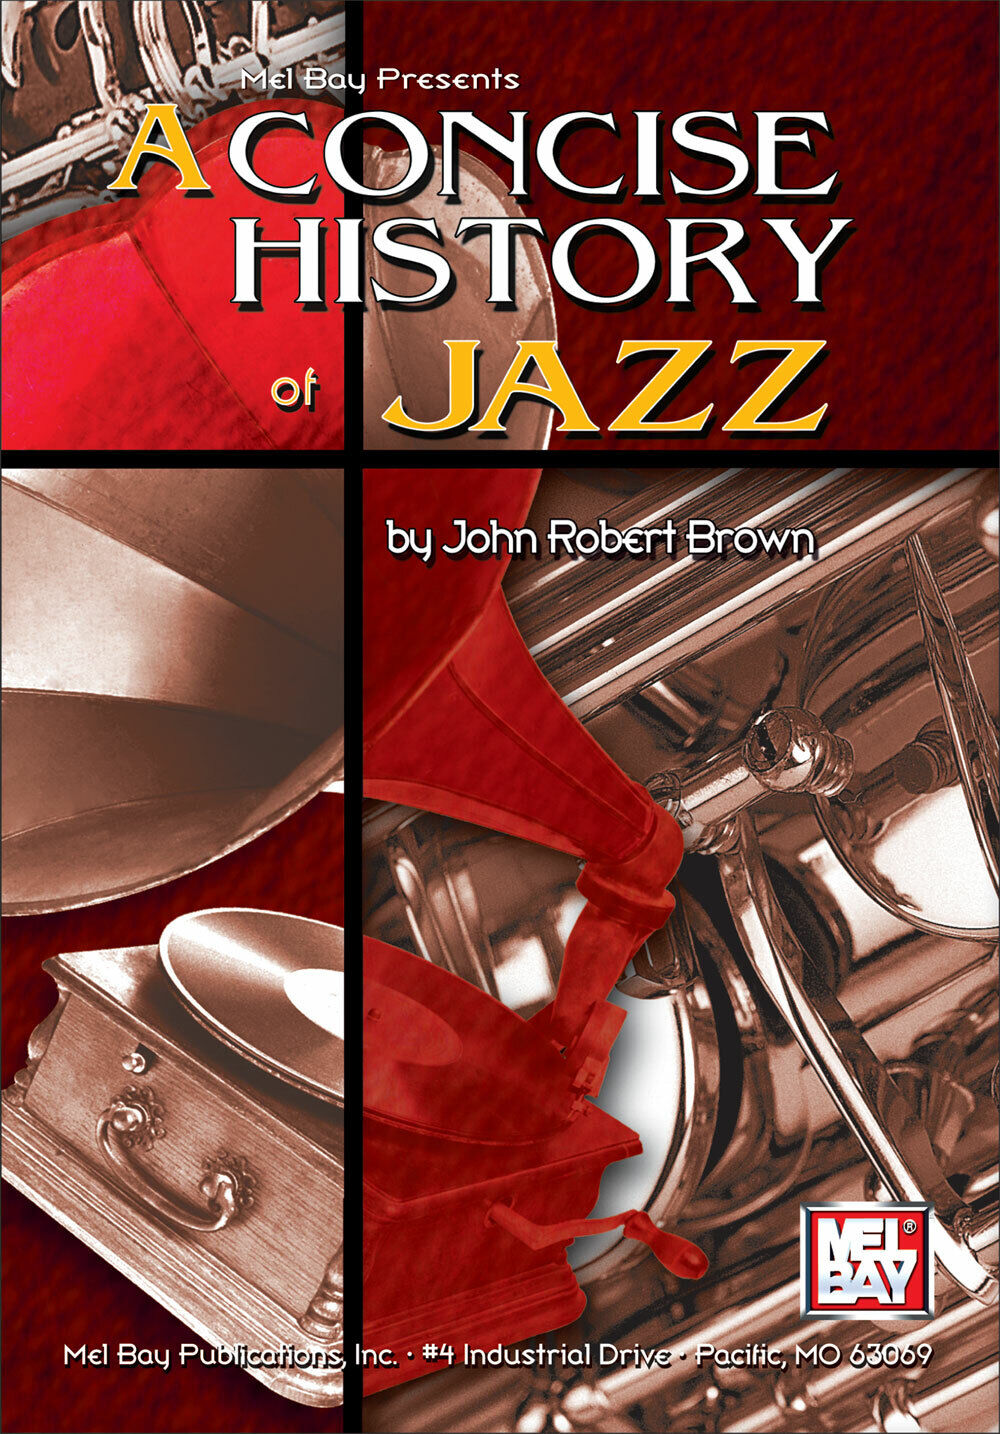 MEL BAY 98418 A Concise History of Jazz  by John Robert Brown and Ships FREE